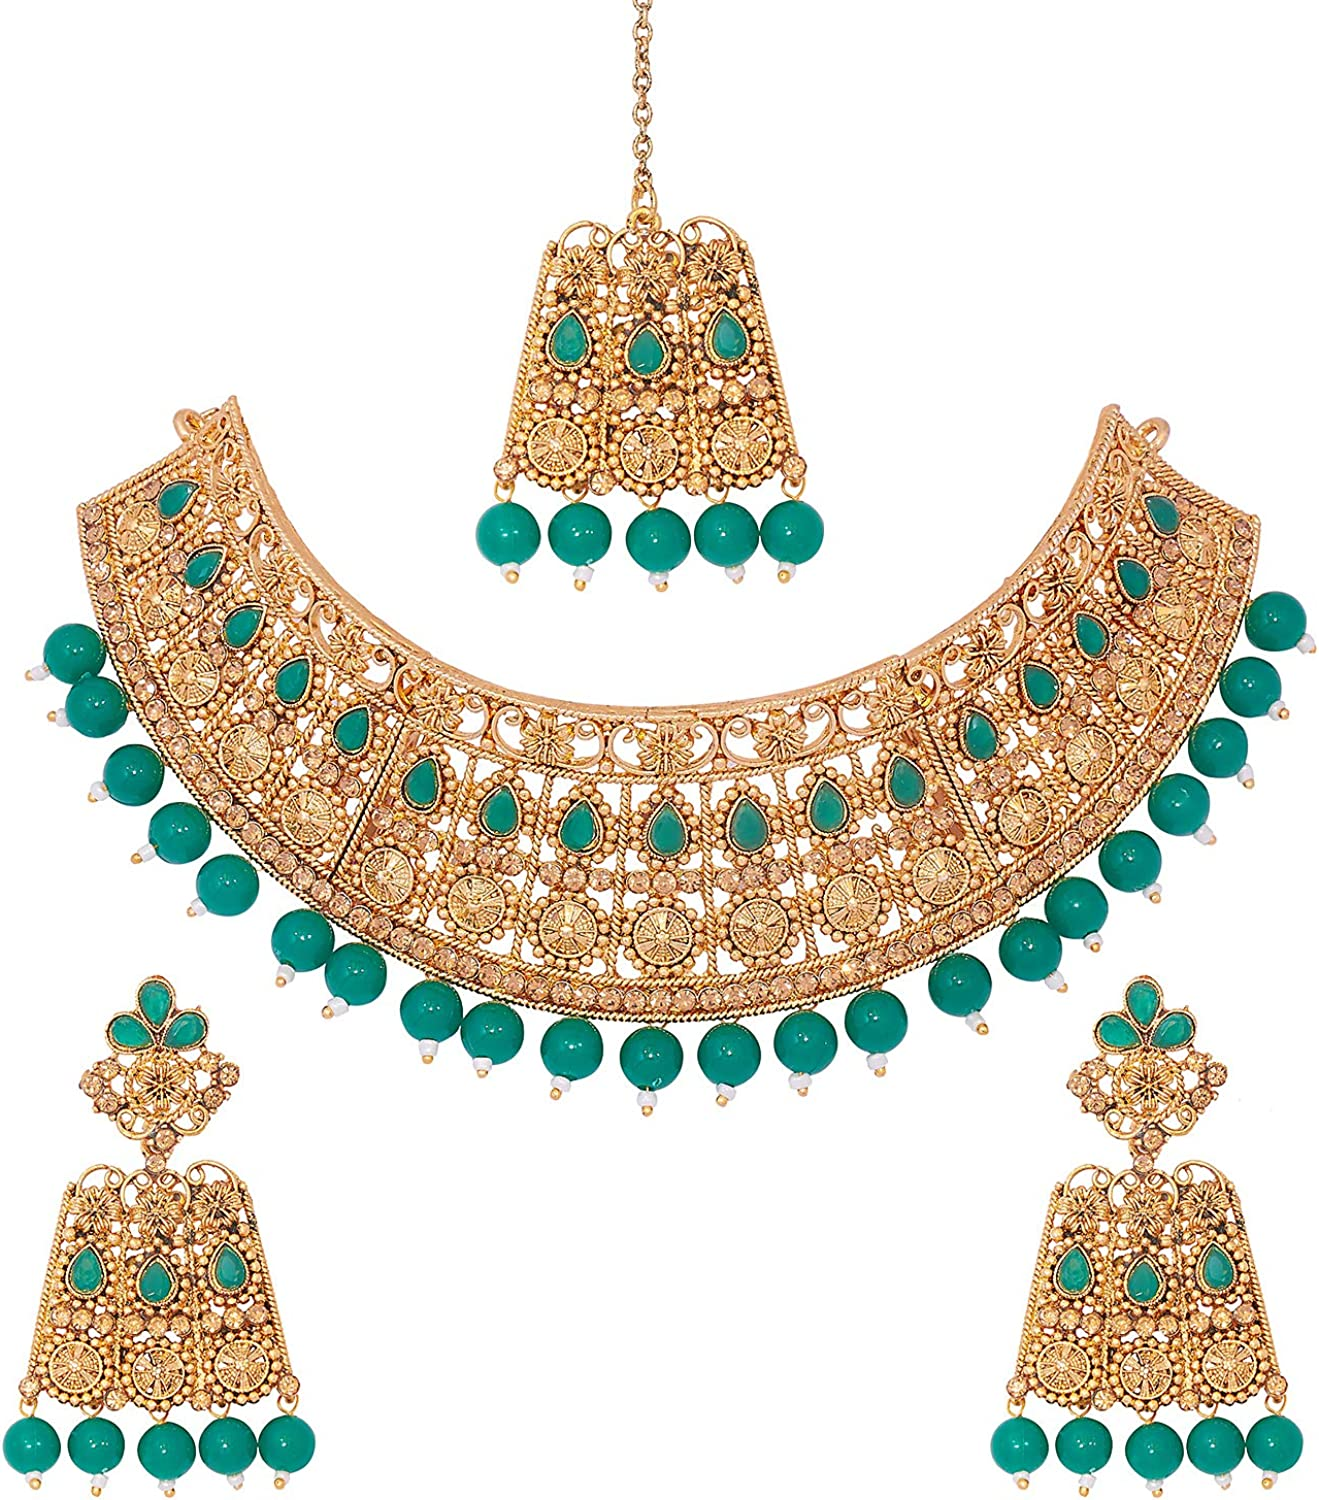 bodha Traditional Indian 18K Antique Gold Plated One Gram Wedding Bridal Jewellery Combo Necklace Set with Tikka and Earrings for Women (SJ_2920_G)